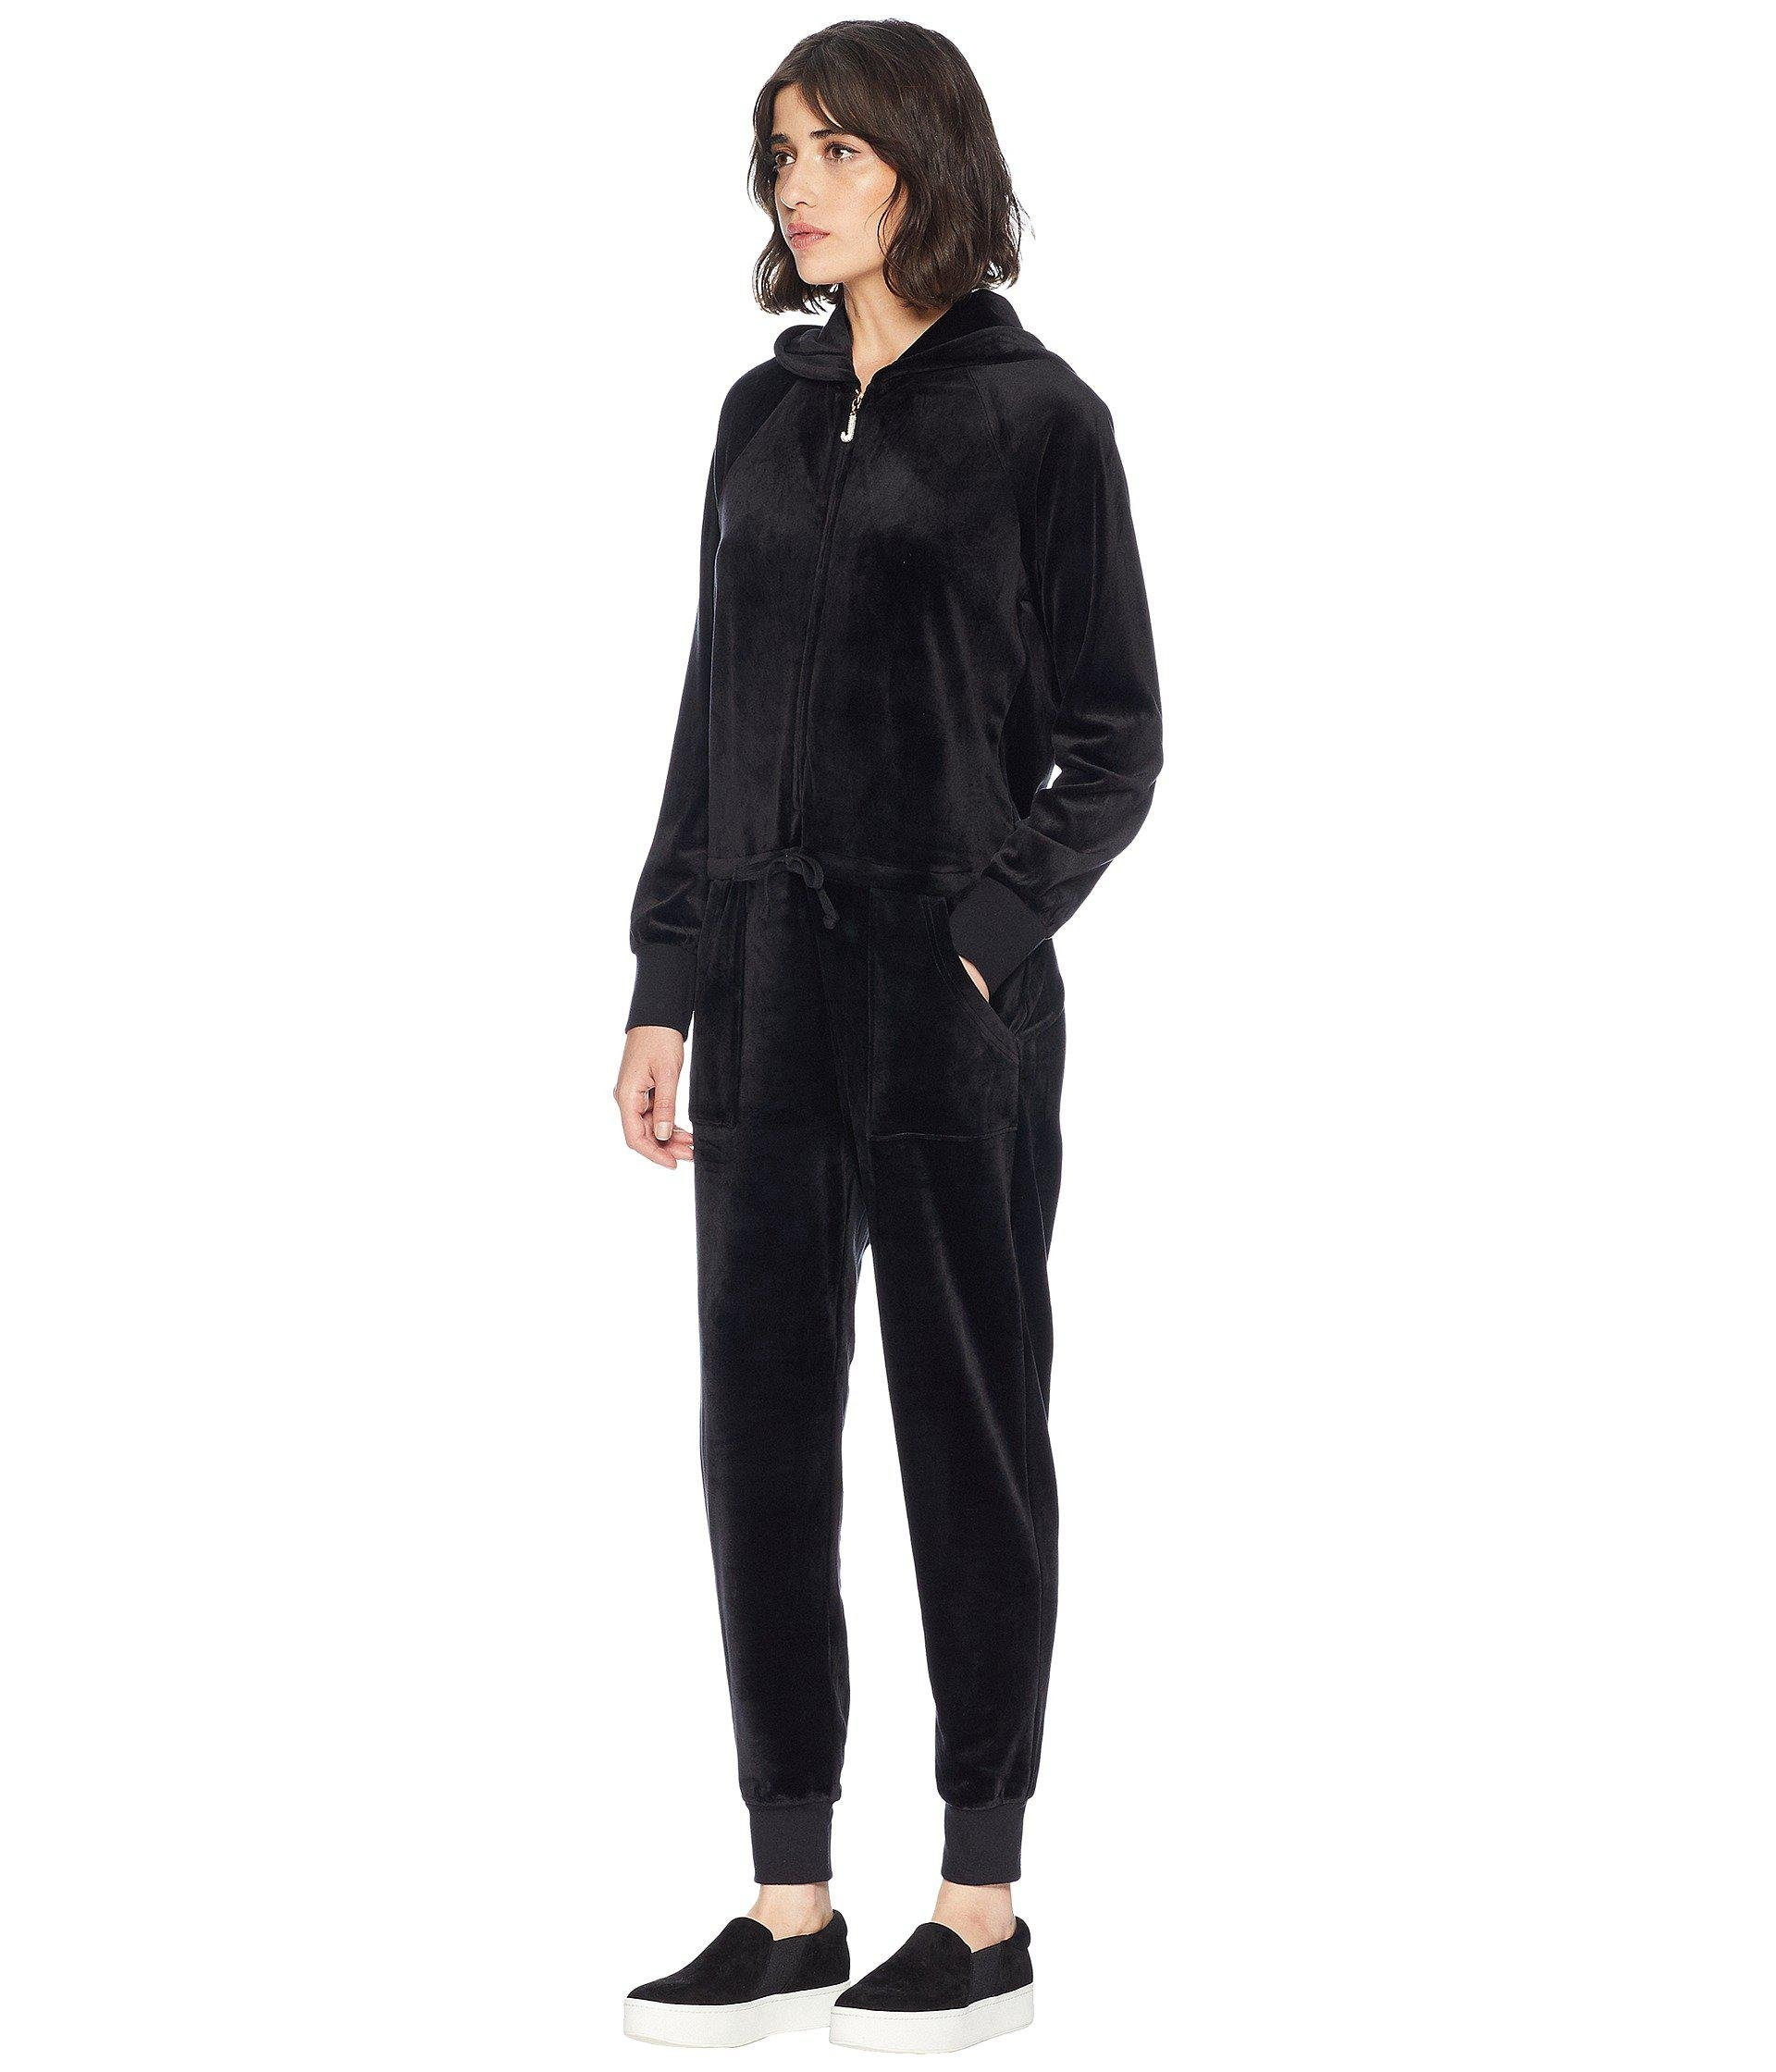 8211019762d1 Lyst - Juicy Couture Track Luxe Velour Jumpsuit W  Charm Pull in Black